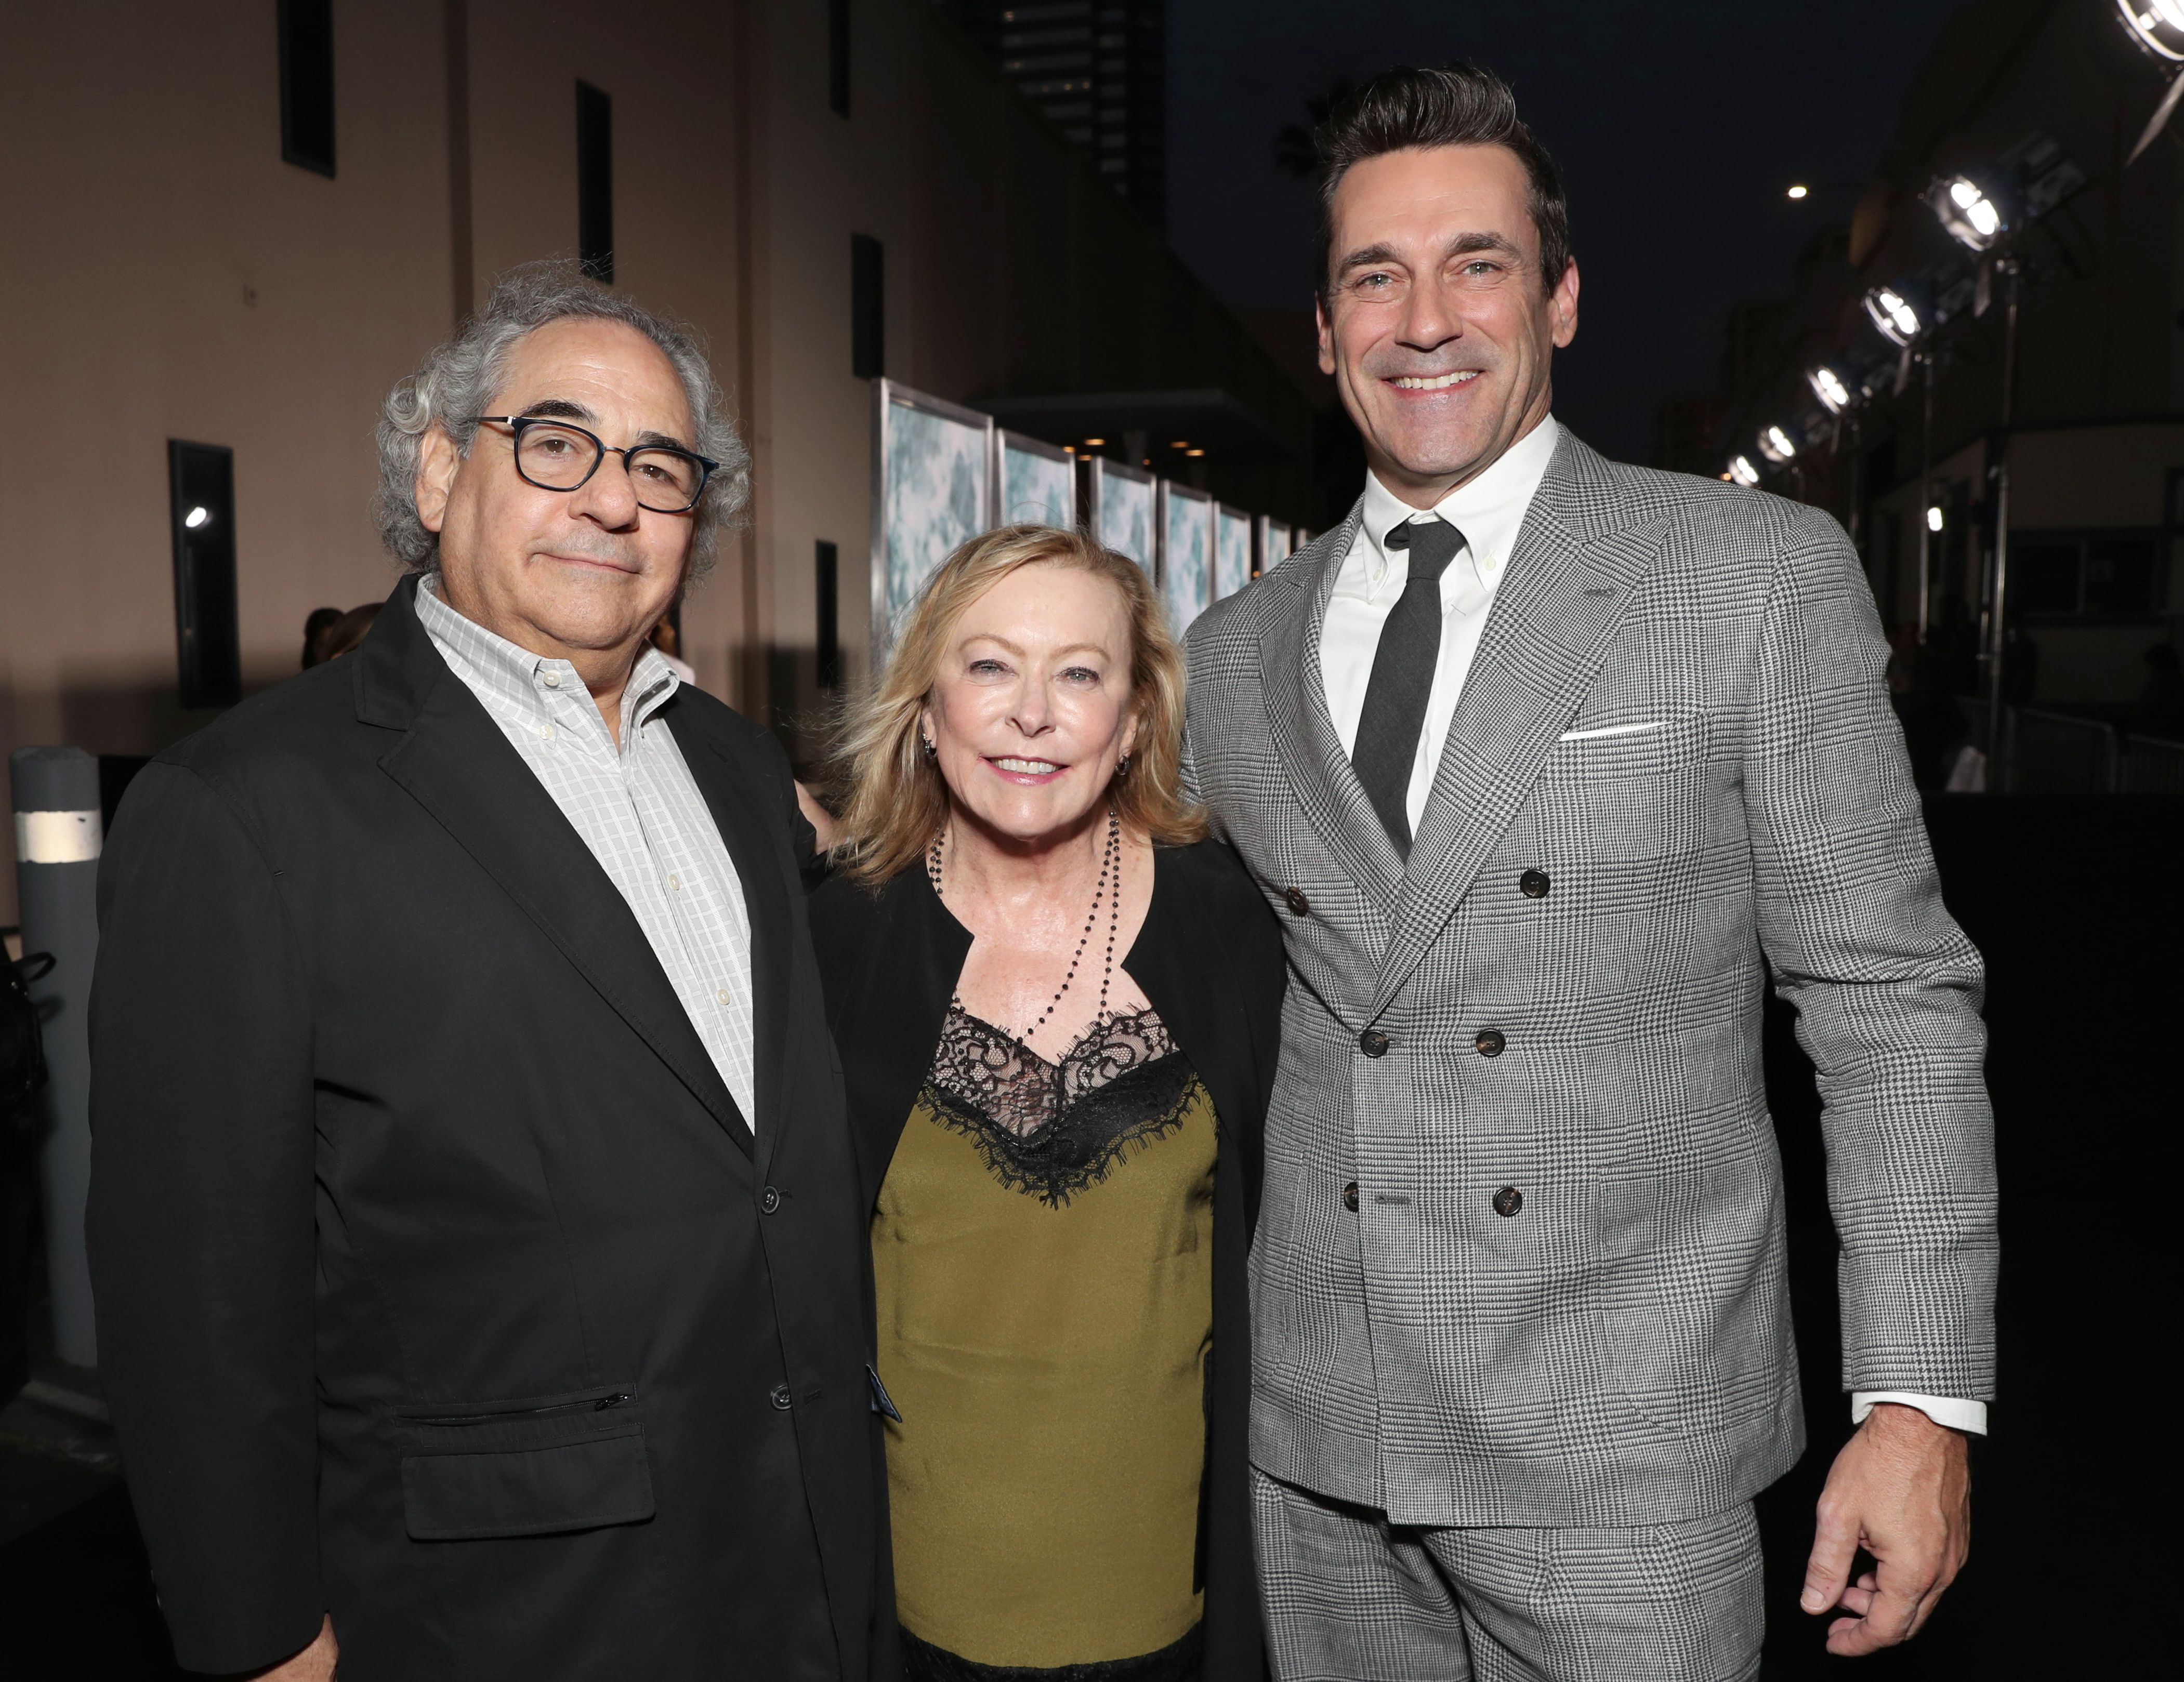 Steve Gilula, Nancy Utley, Jon Hamm'Lucy in the Sky' film premiere, Arrivals, Darryl F. Zanuck Theater, Los Angeles, USA - 25 Sep 2019